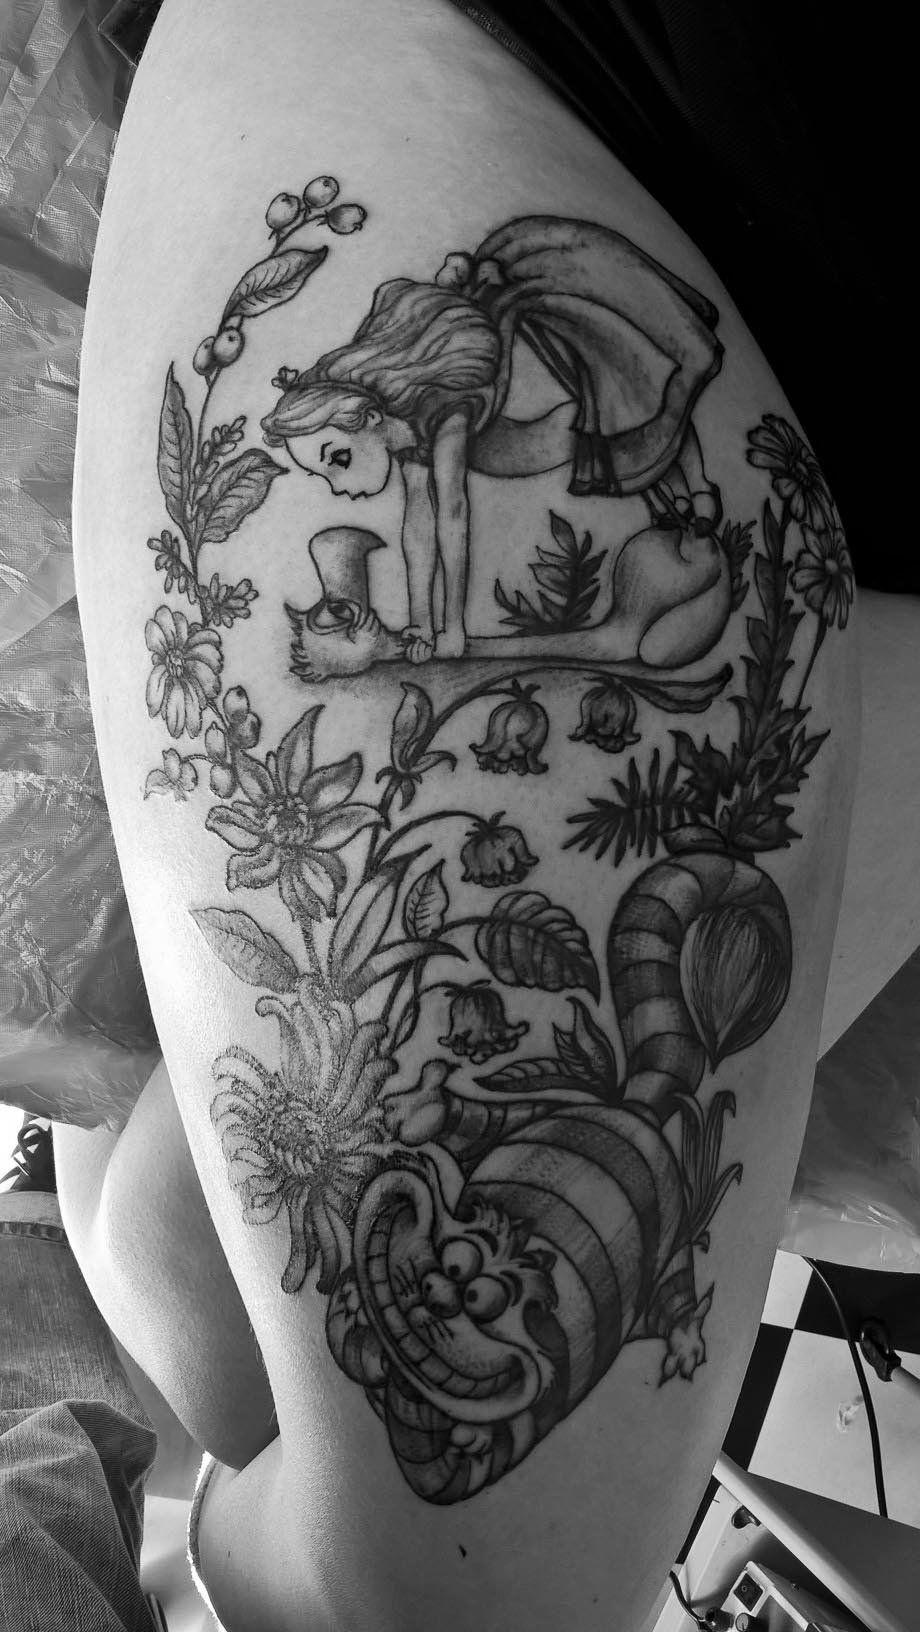 tattoo kuk, alice in wunderland